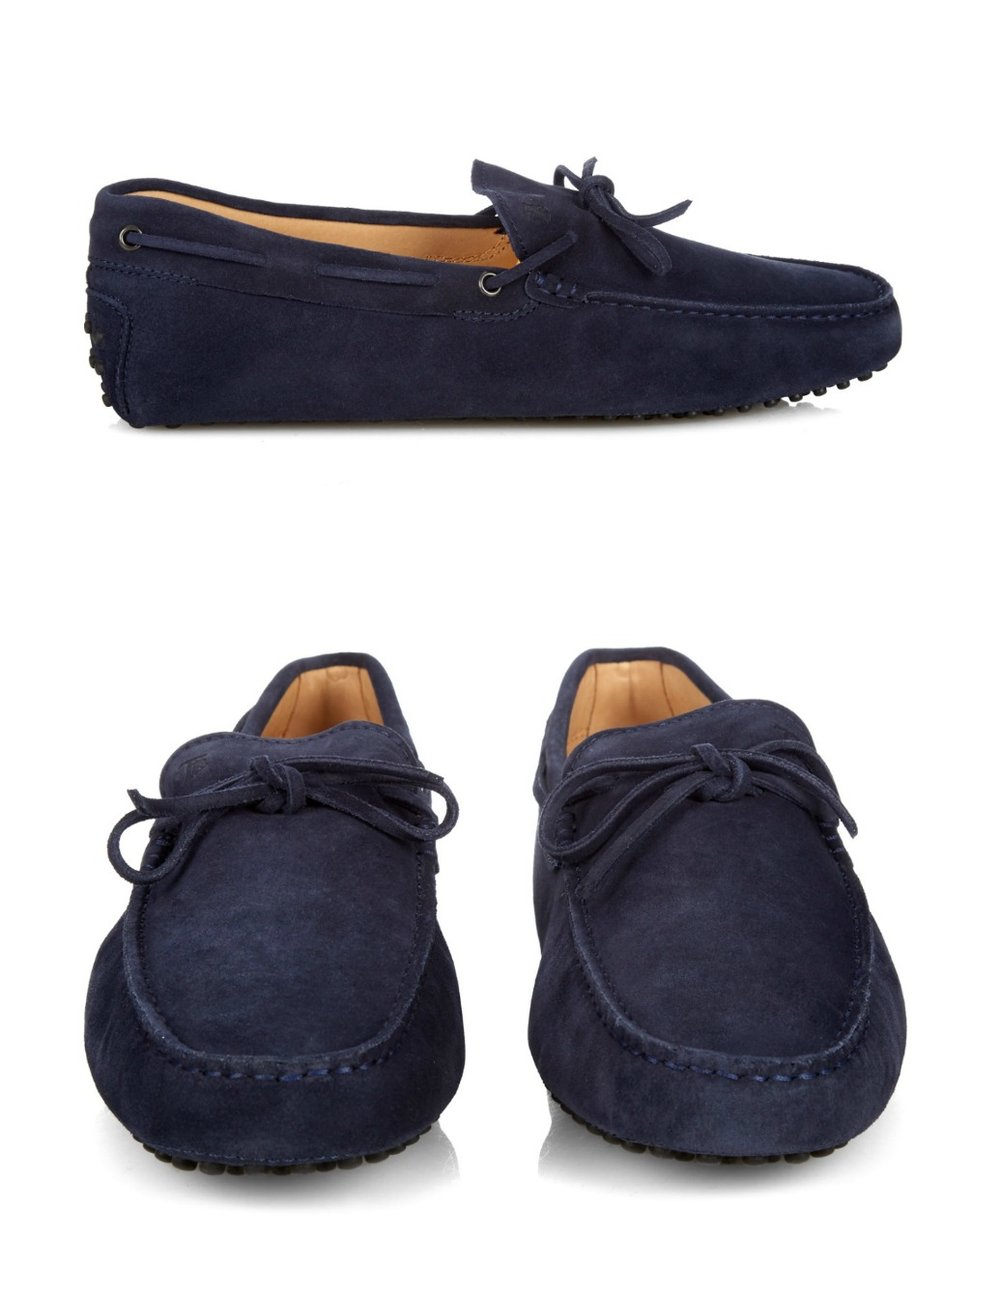 TODSGommino suede driving shoes - MATCHESFASHION.COM